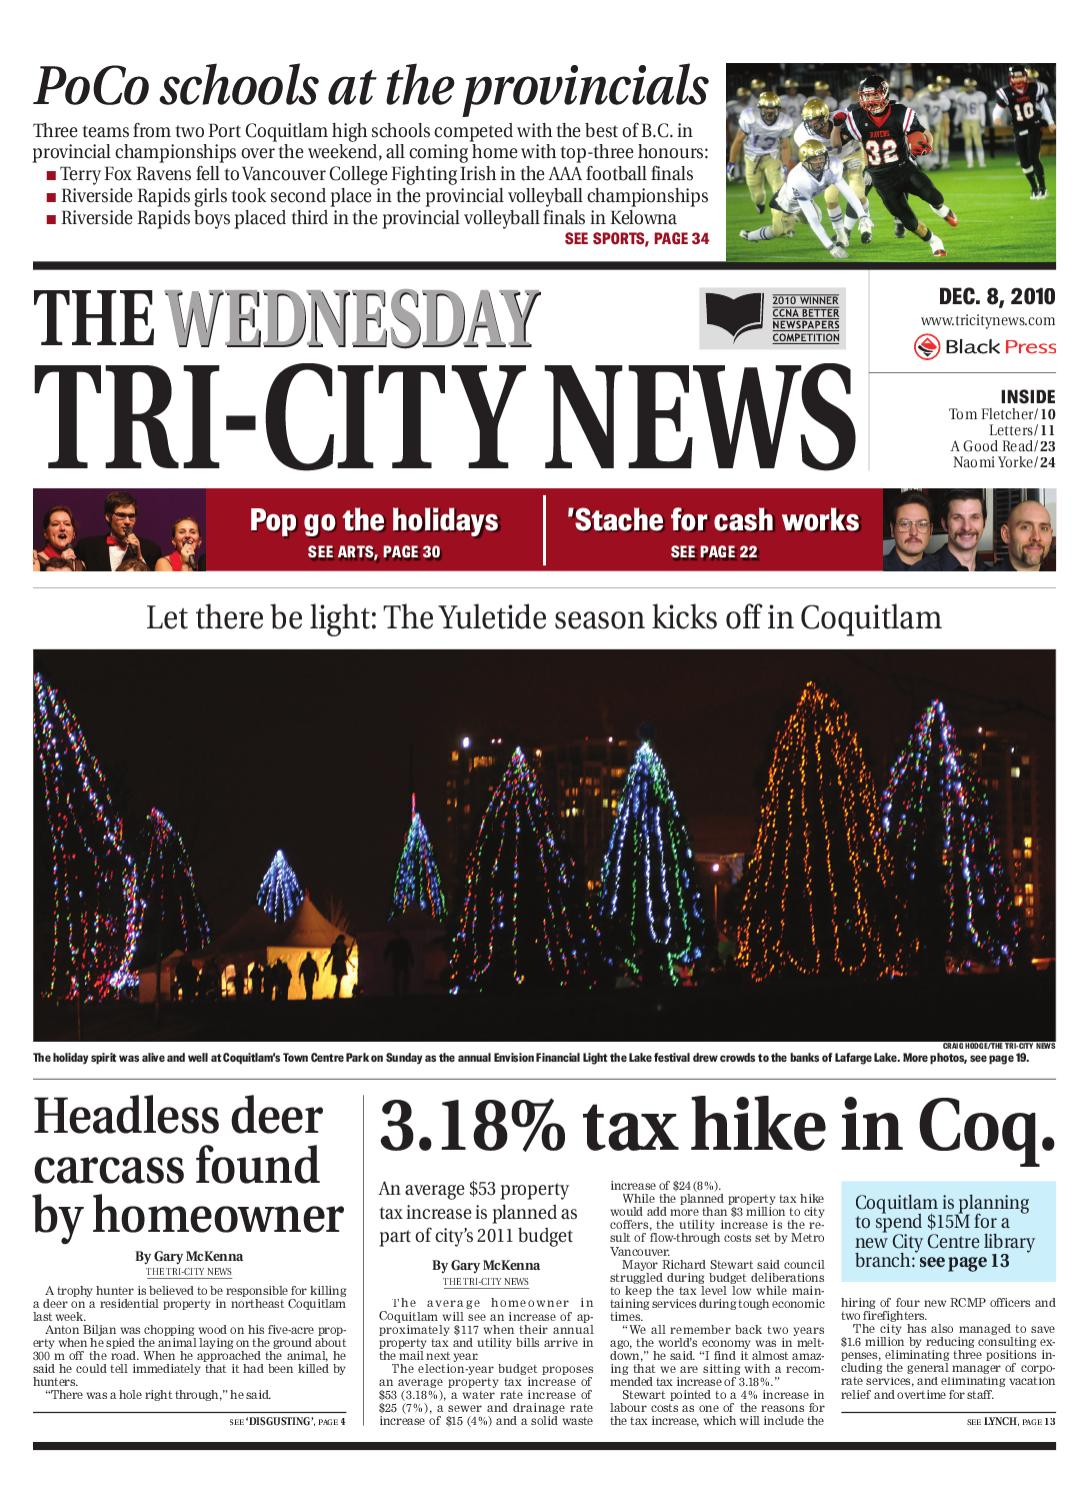 Wed december 8 2010 tri city news by tri city news issuu fandeluxe Images